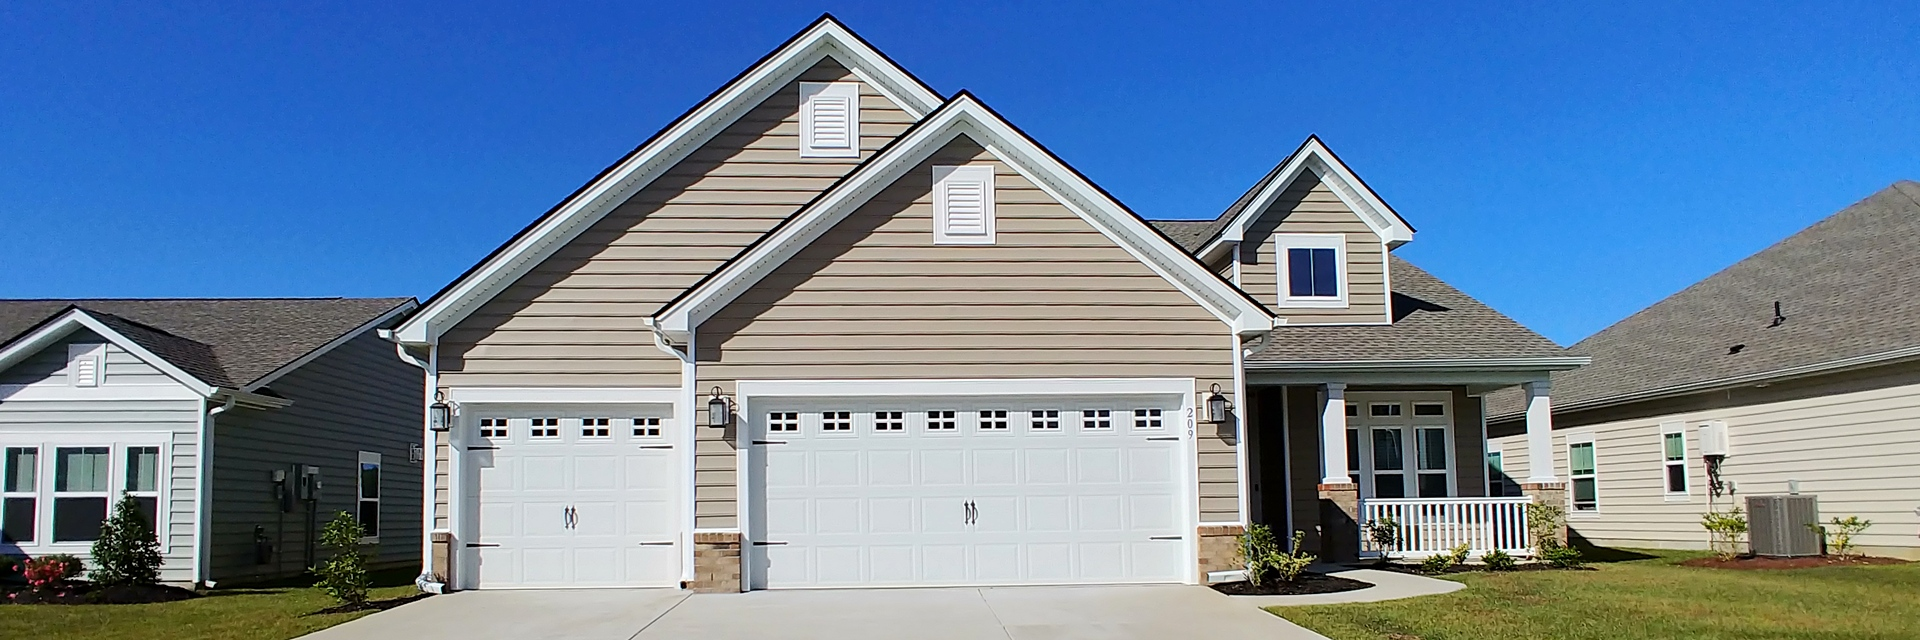 Homes With 3 or More Car Garages For Sale Near Myrtle Beach SC